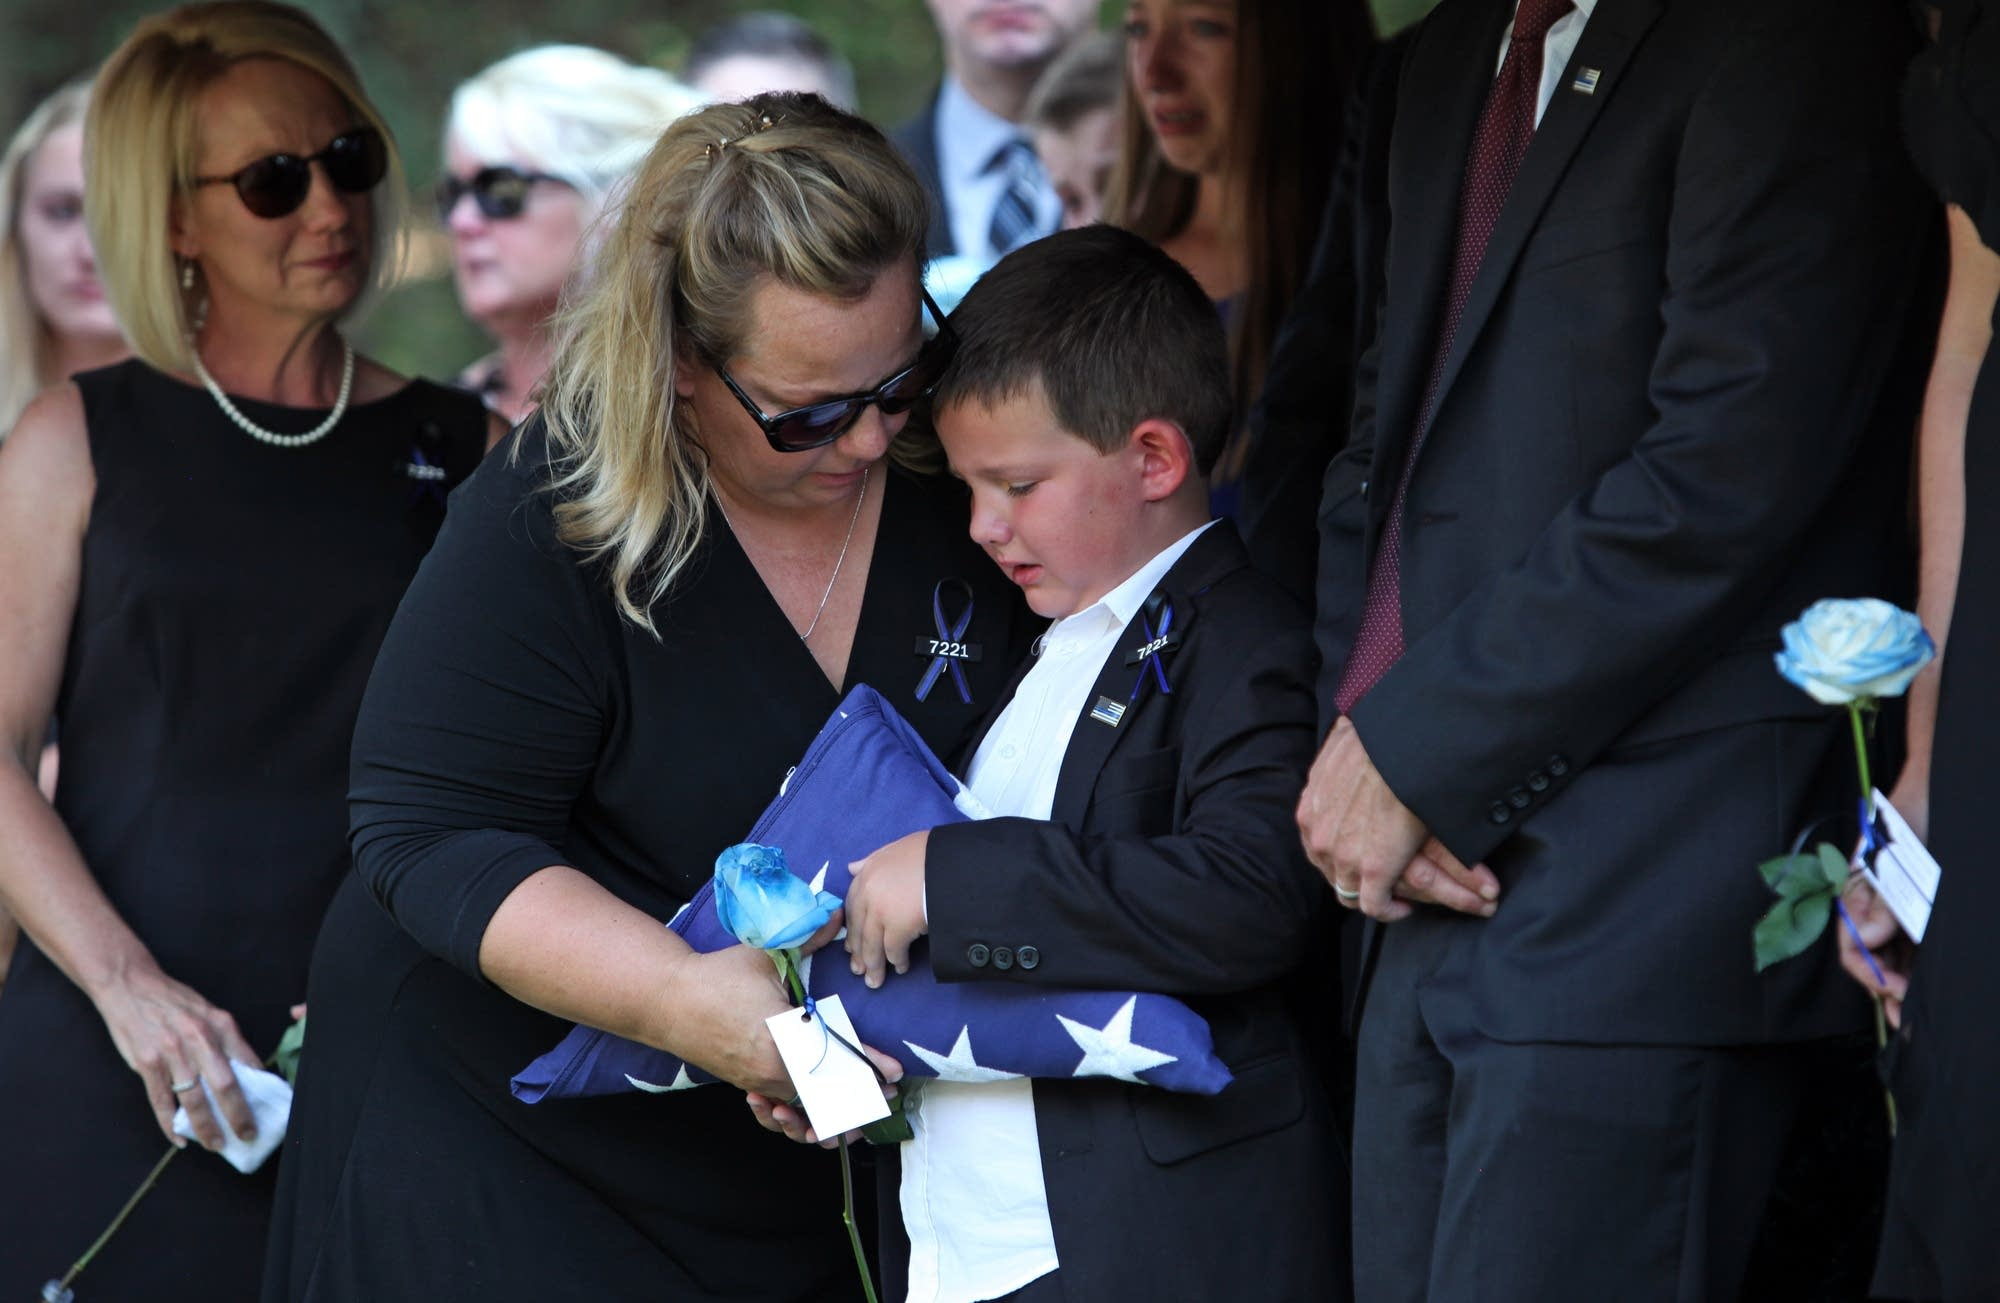 Mathews left behind his wife and 7-year-old son.